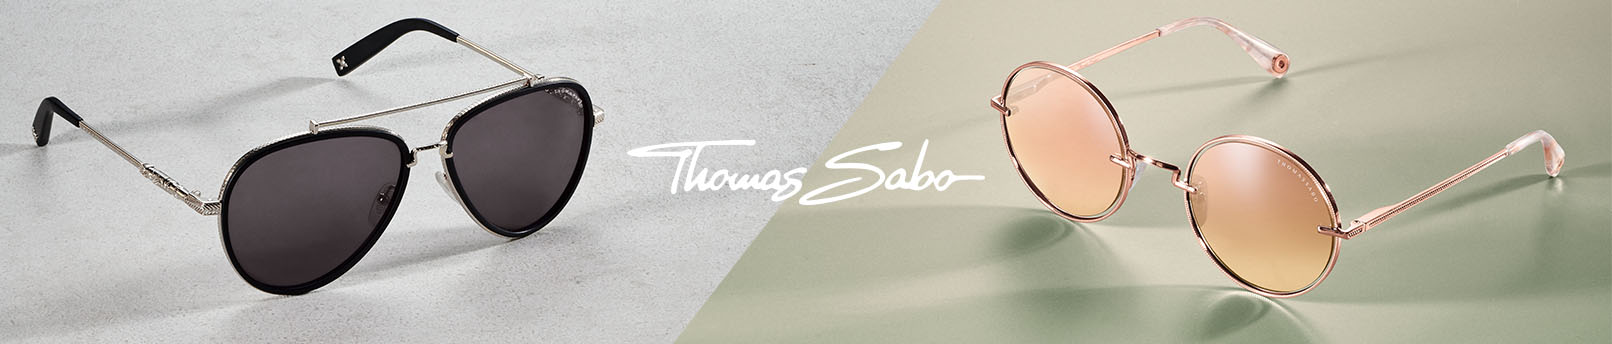 THOMAS SABO shoppen